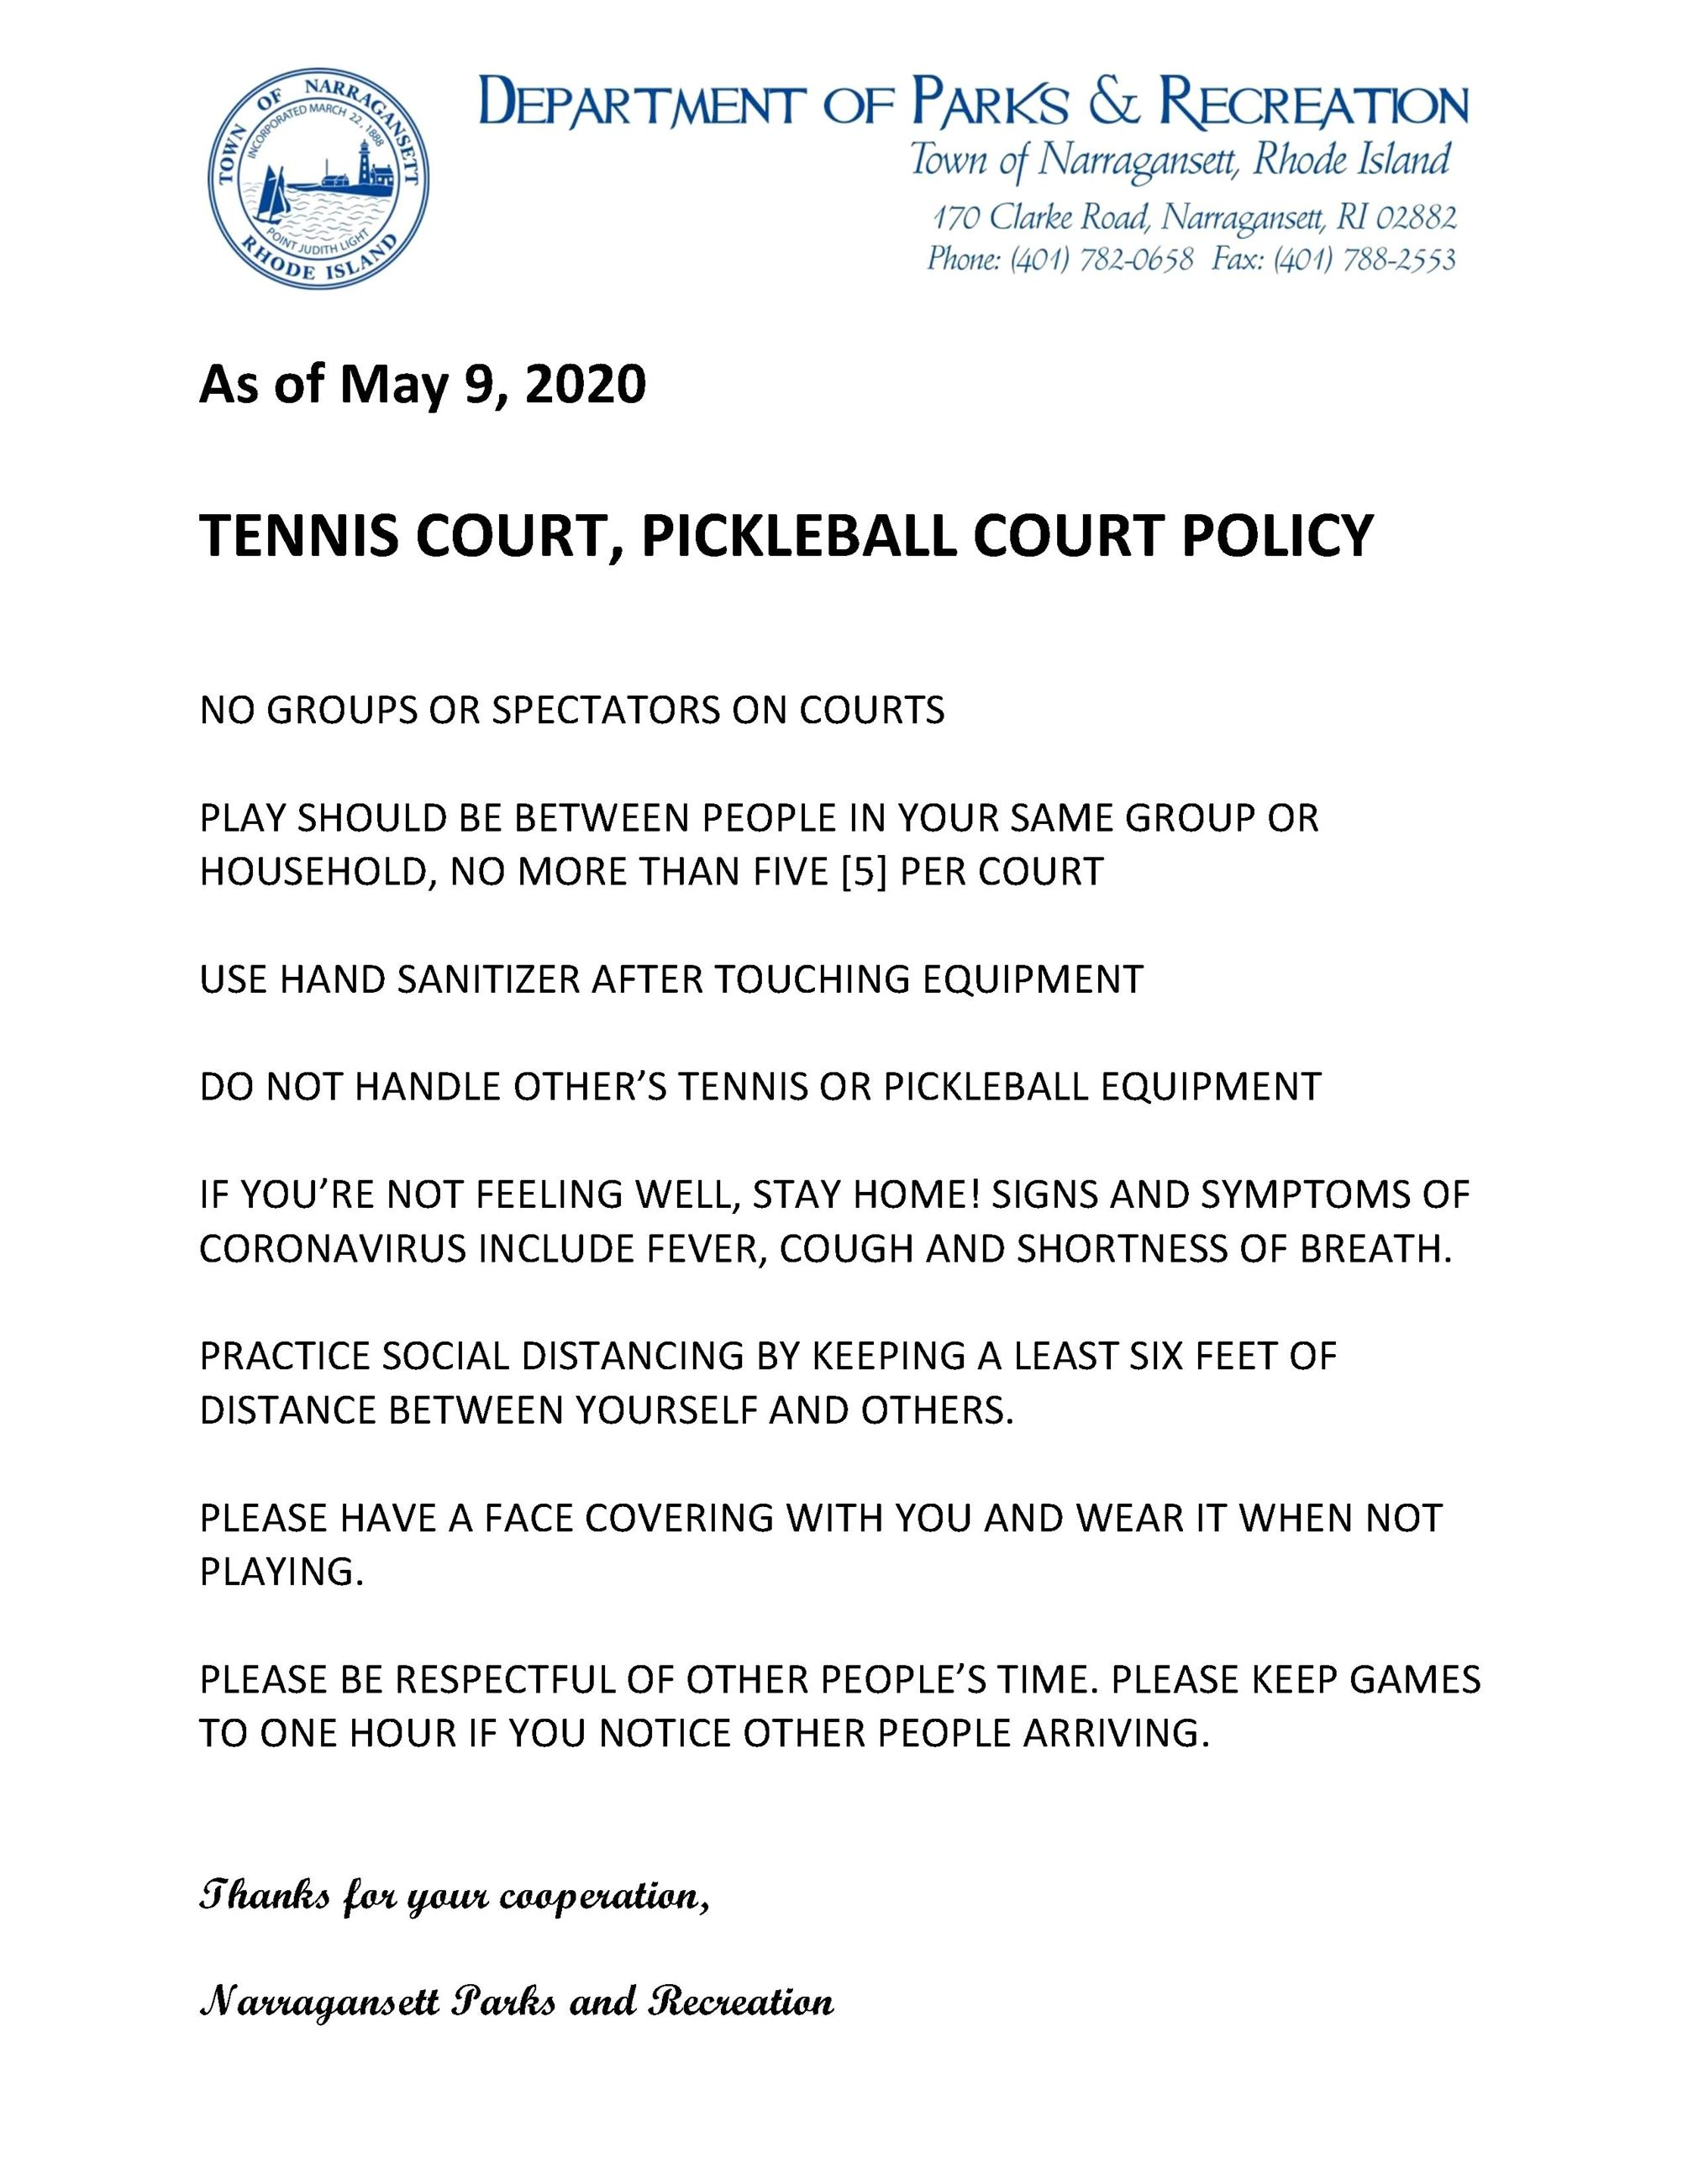 Tennis Court and Pickleball Court Policy 5.9.20